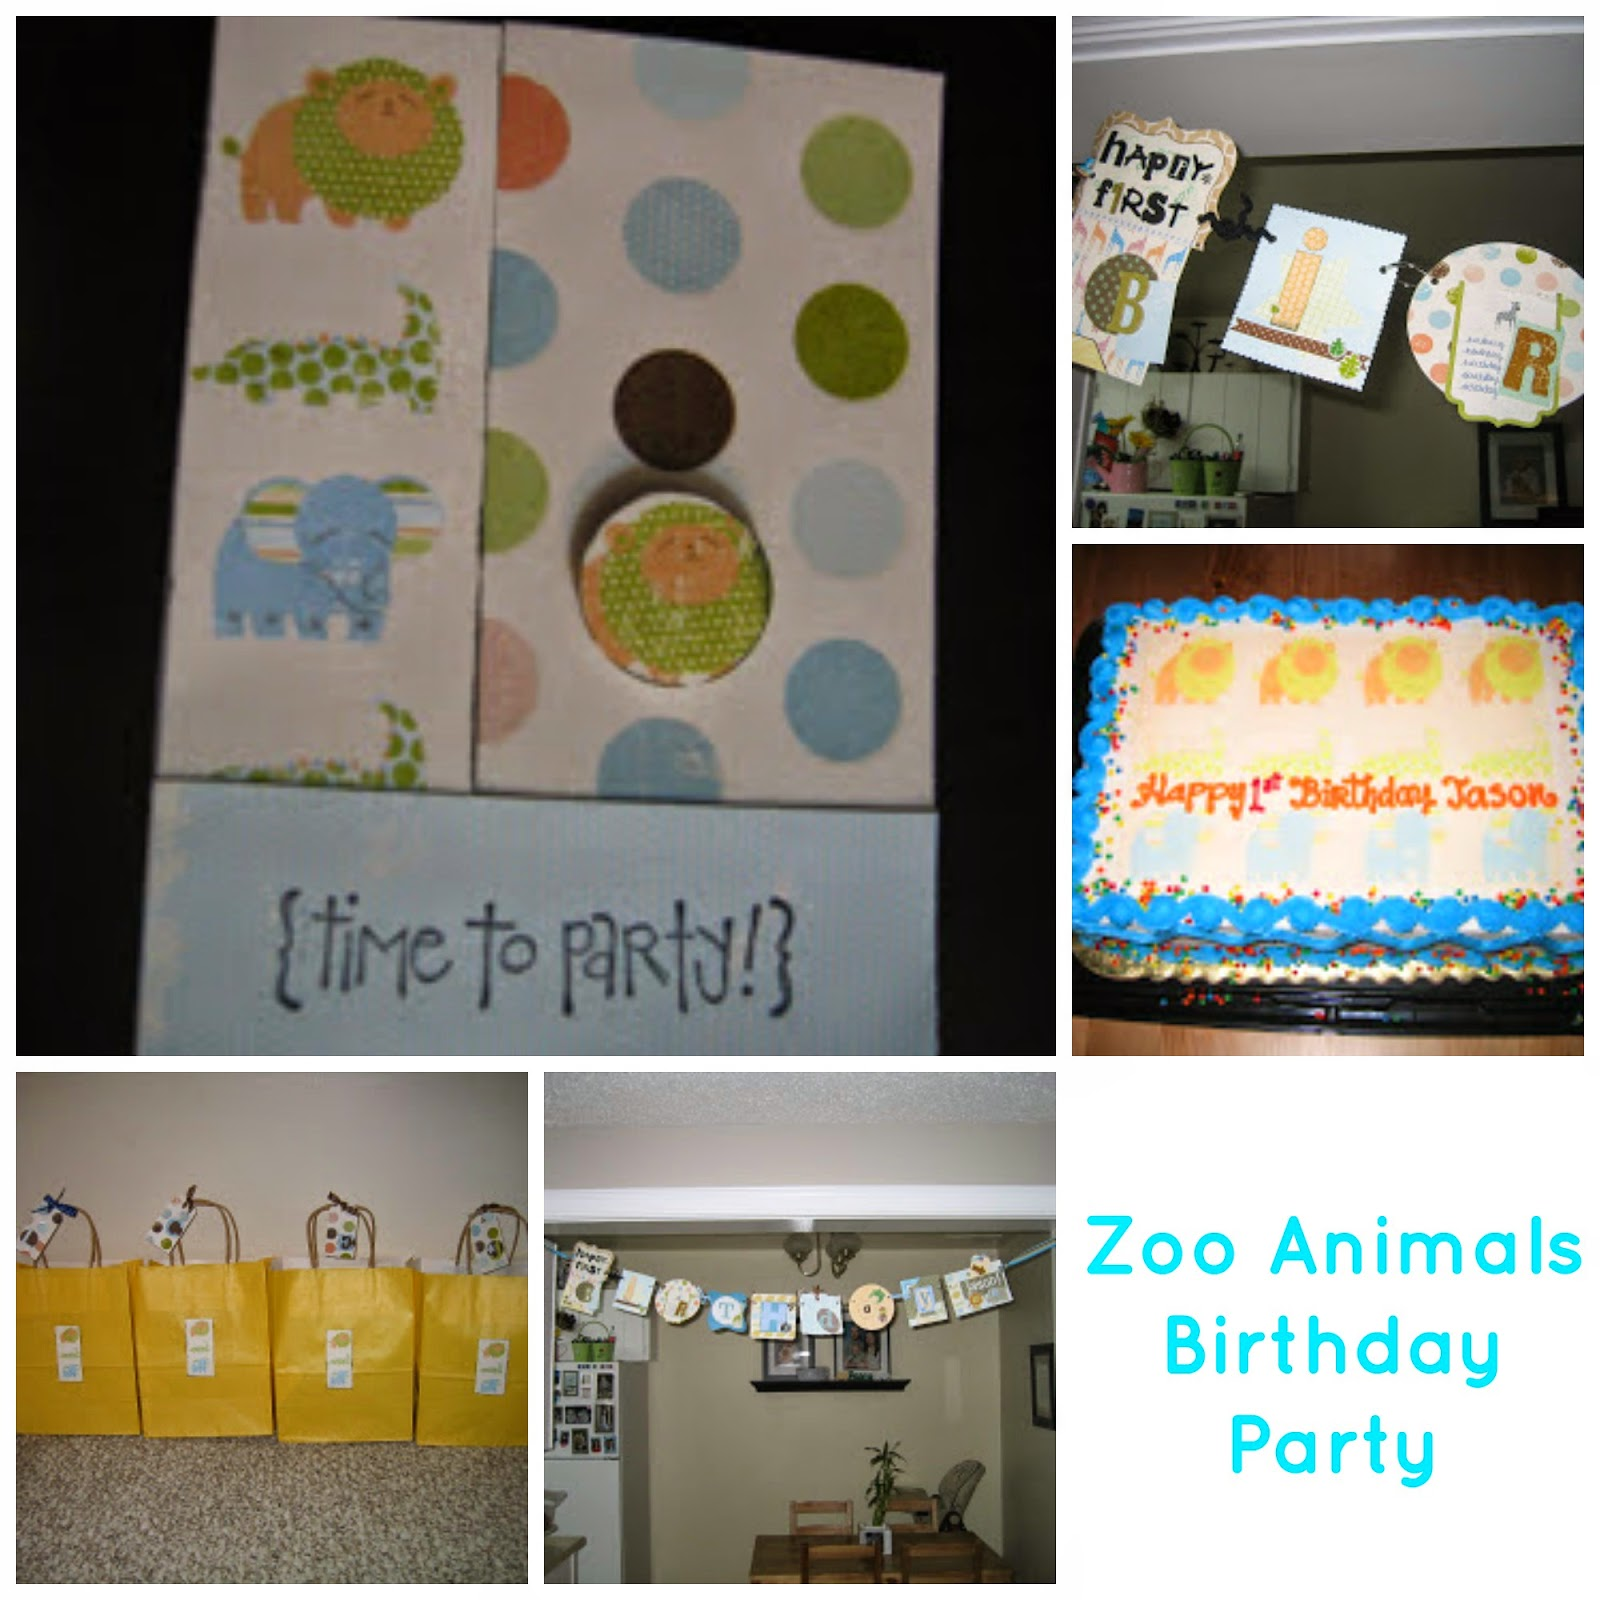 http://craftingandcreativity.blogspot.ca/2011/05/boys-1st-birthday-party-zoo-animals.html